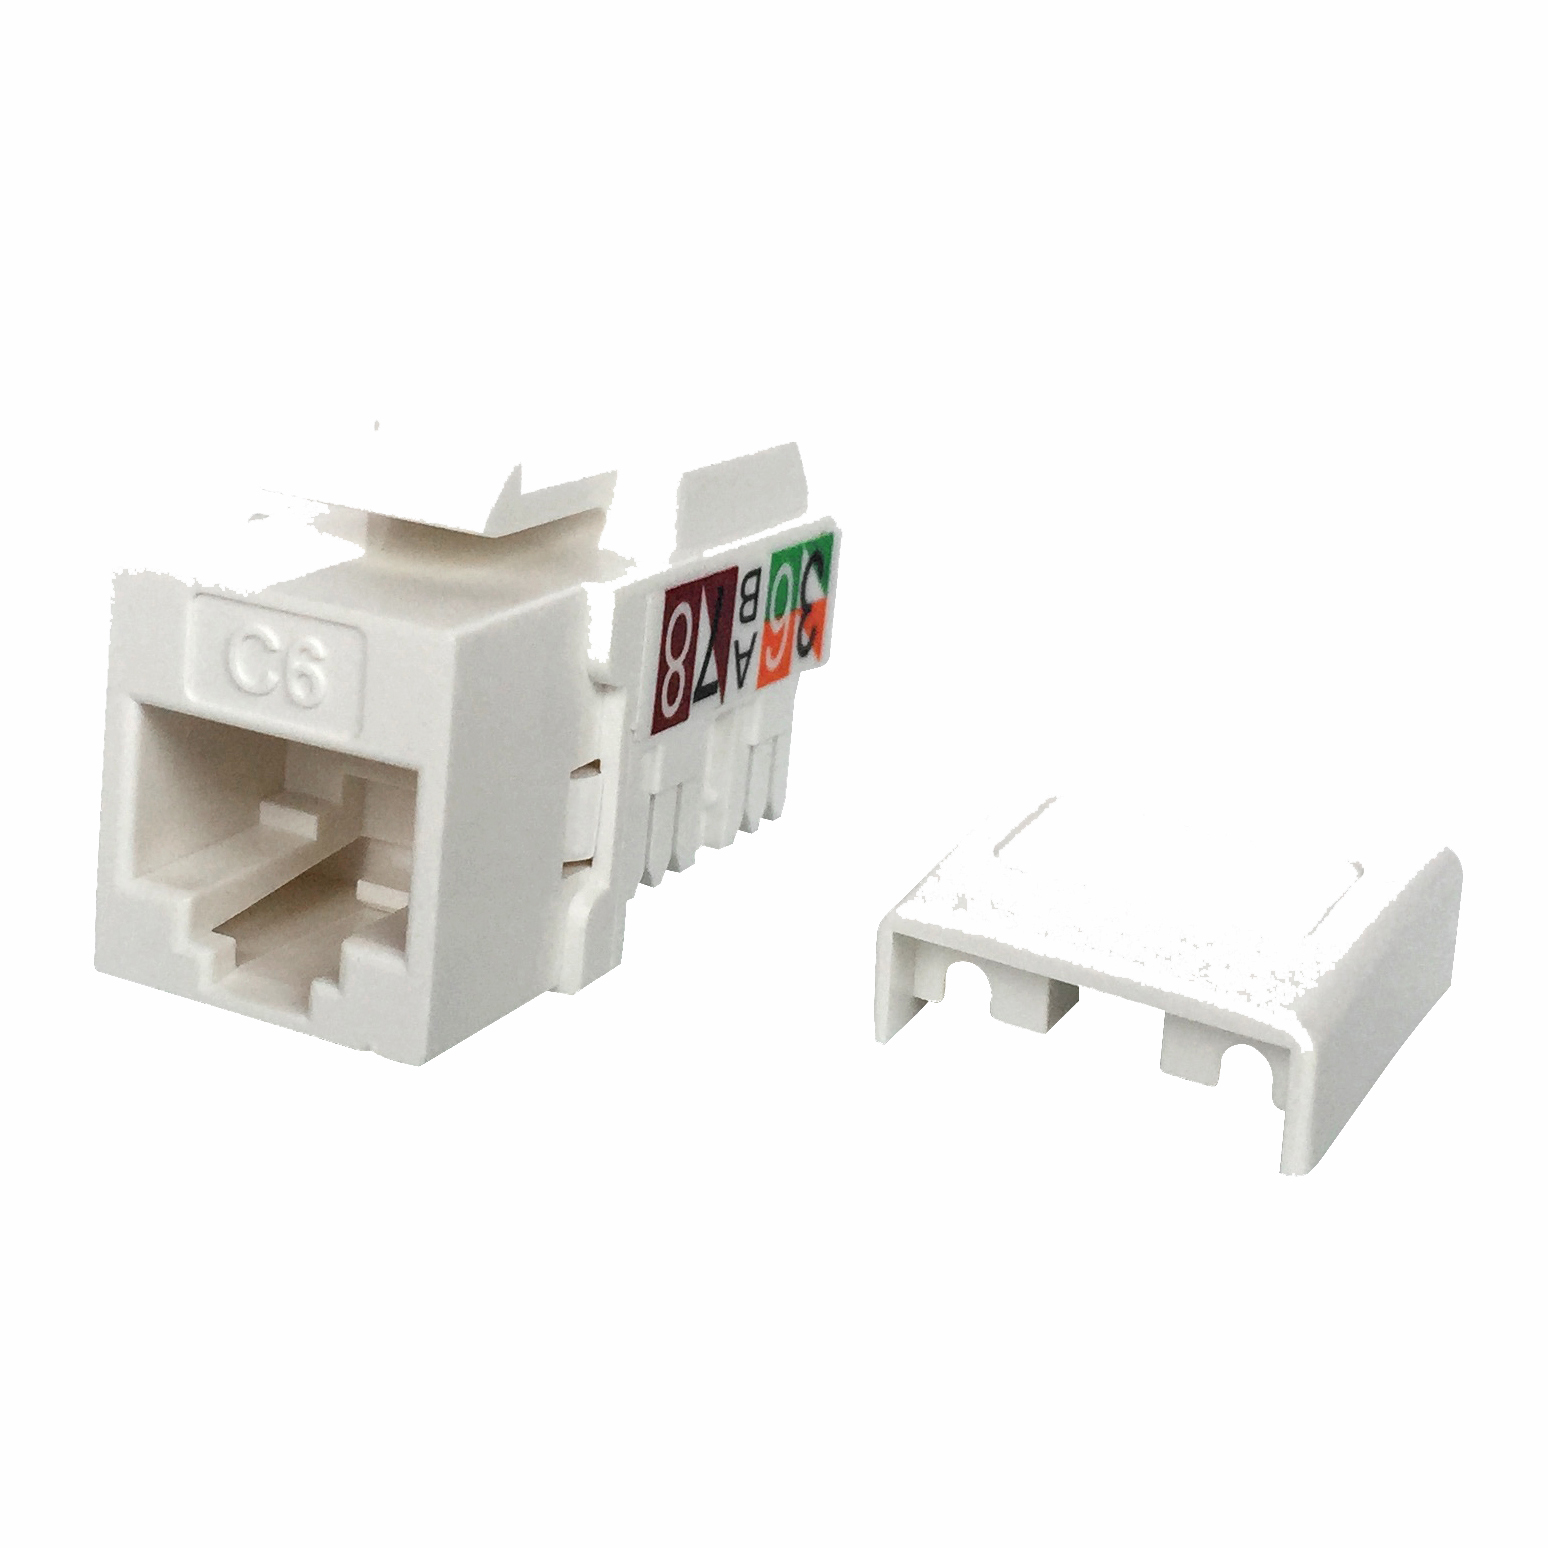 Cat6 Utp 90 110 Punch Down Keystone Jack Electrical Plugs And Telephone Block Diagram To Wire